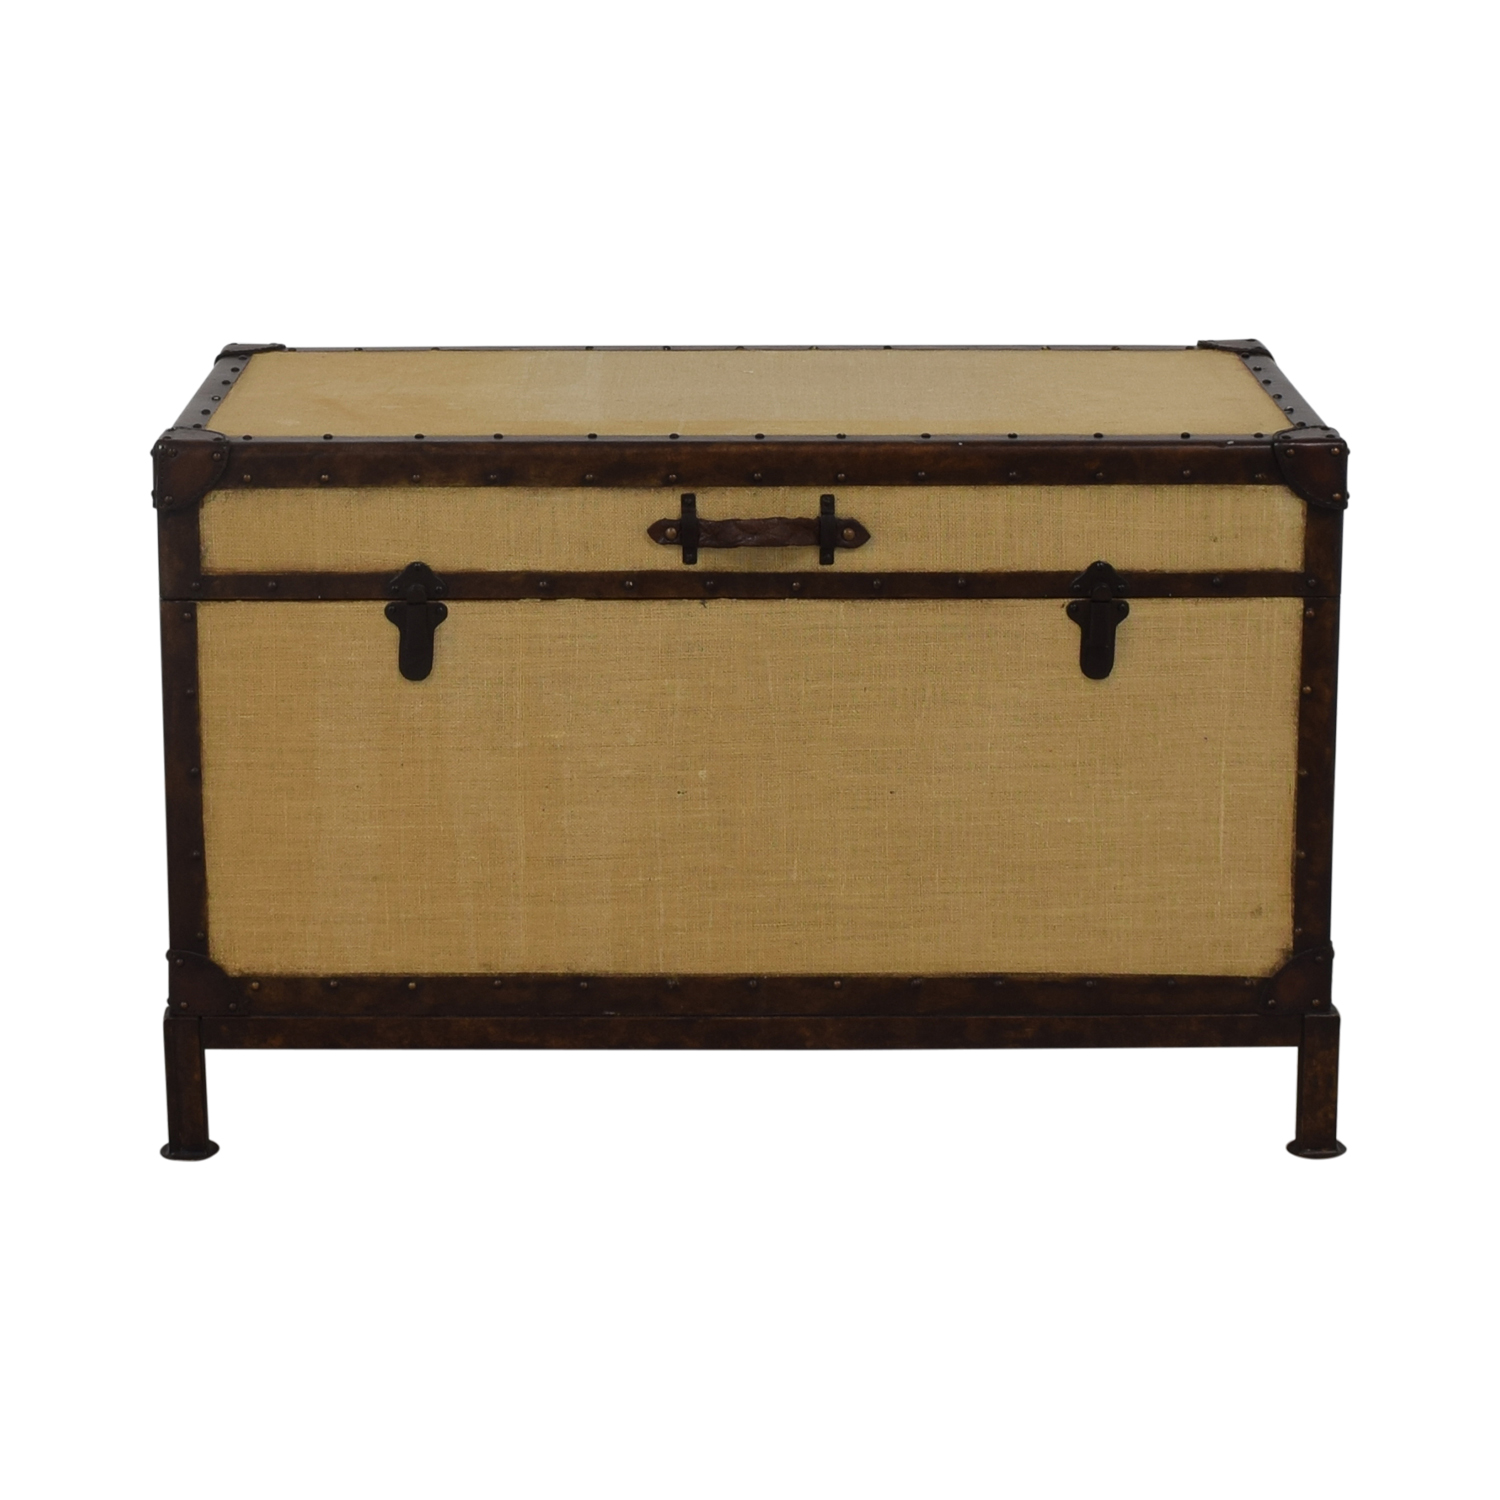 Pottery Barn Pottery Barn Redford End of Bed Trunk nyc